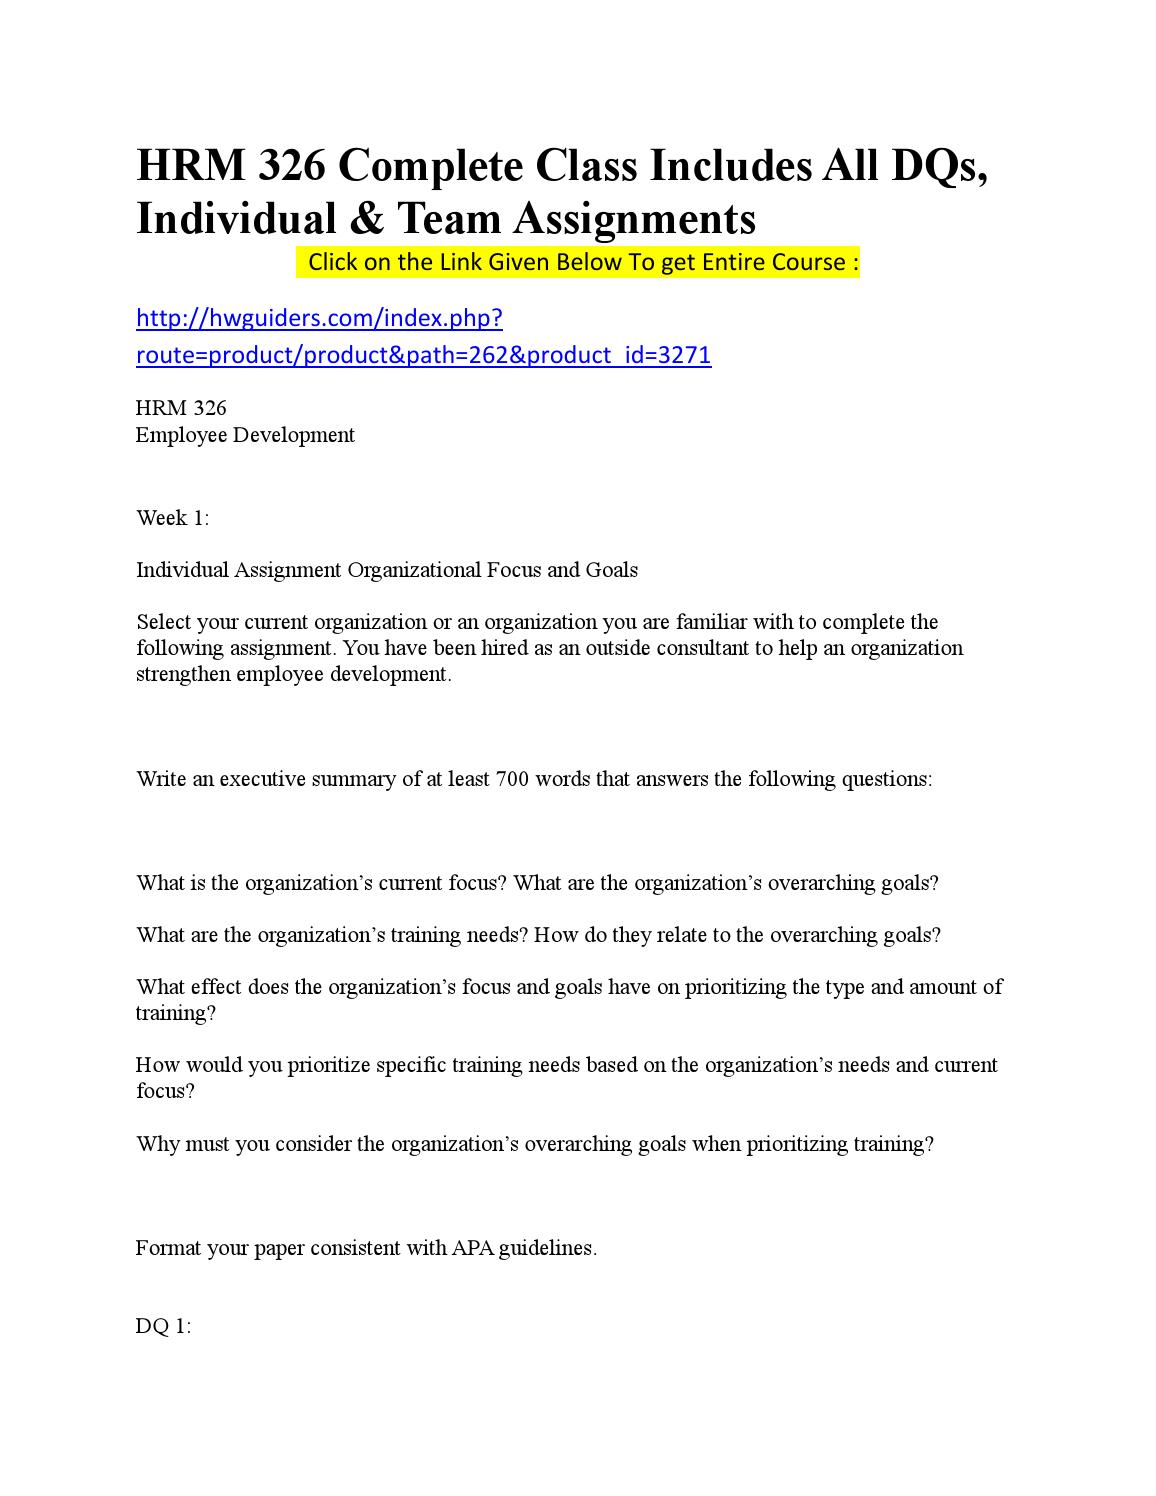 Hrm 326 week 1 individual assignment organizational focus and goals